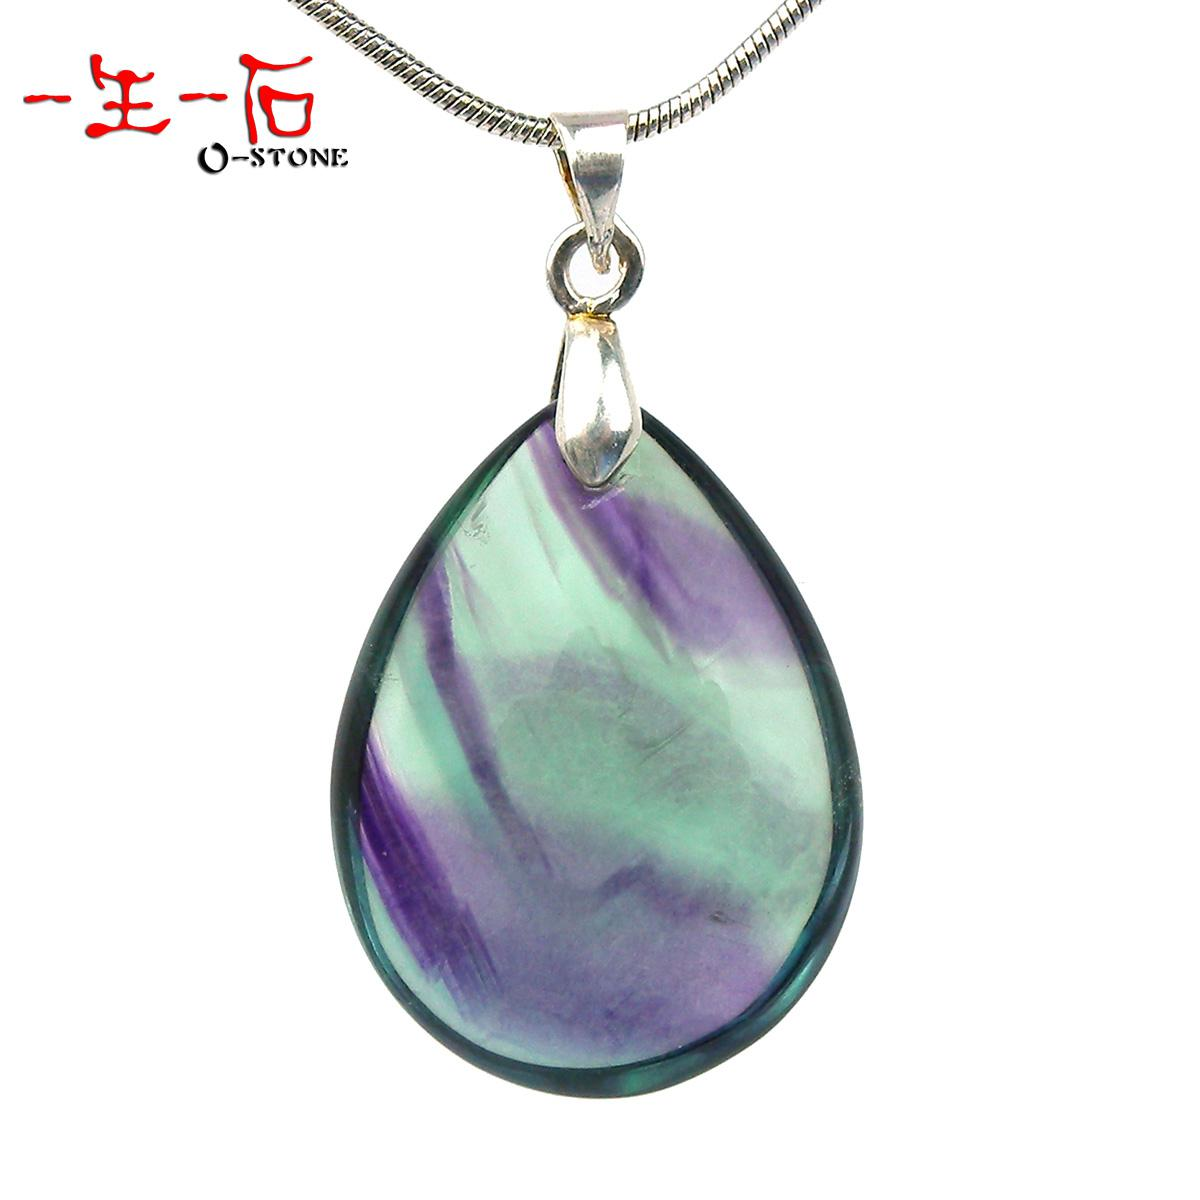 Wholesale life of a genuine natural stone pendant rainbow fluorite wholesale life of a genuine natural stone pendant rainbow fluorite fluorspar peacock crystal pendant gift fema silver jewelry gold jewelry from mushan aloadofball Image collections